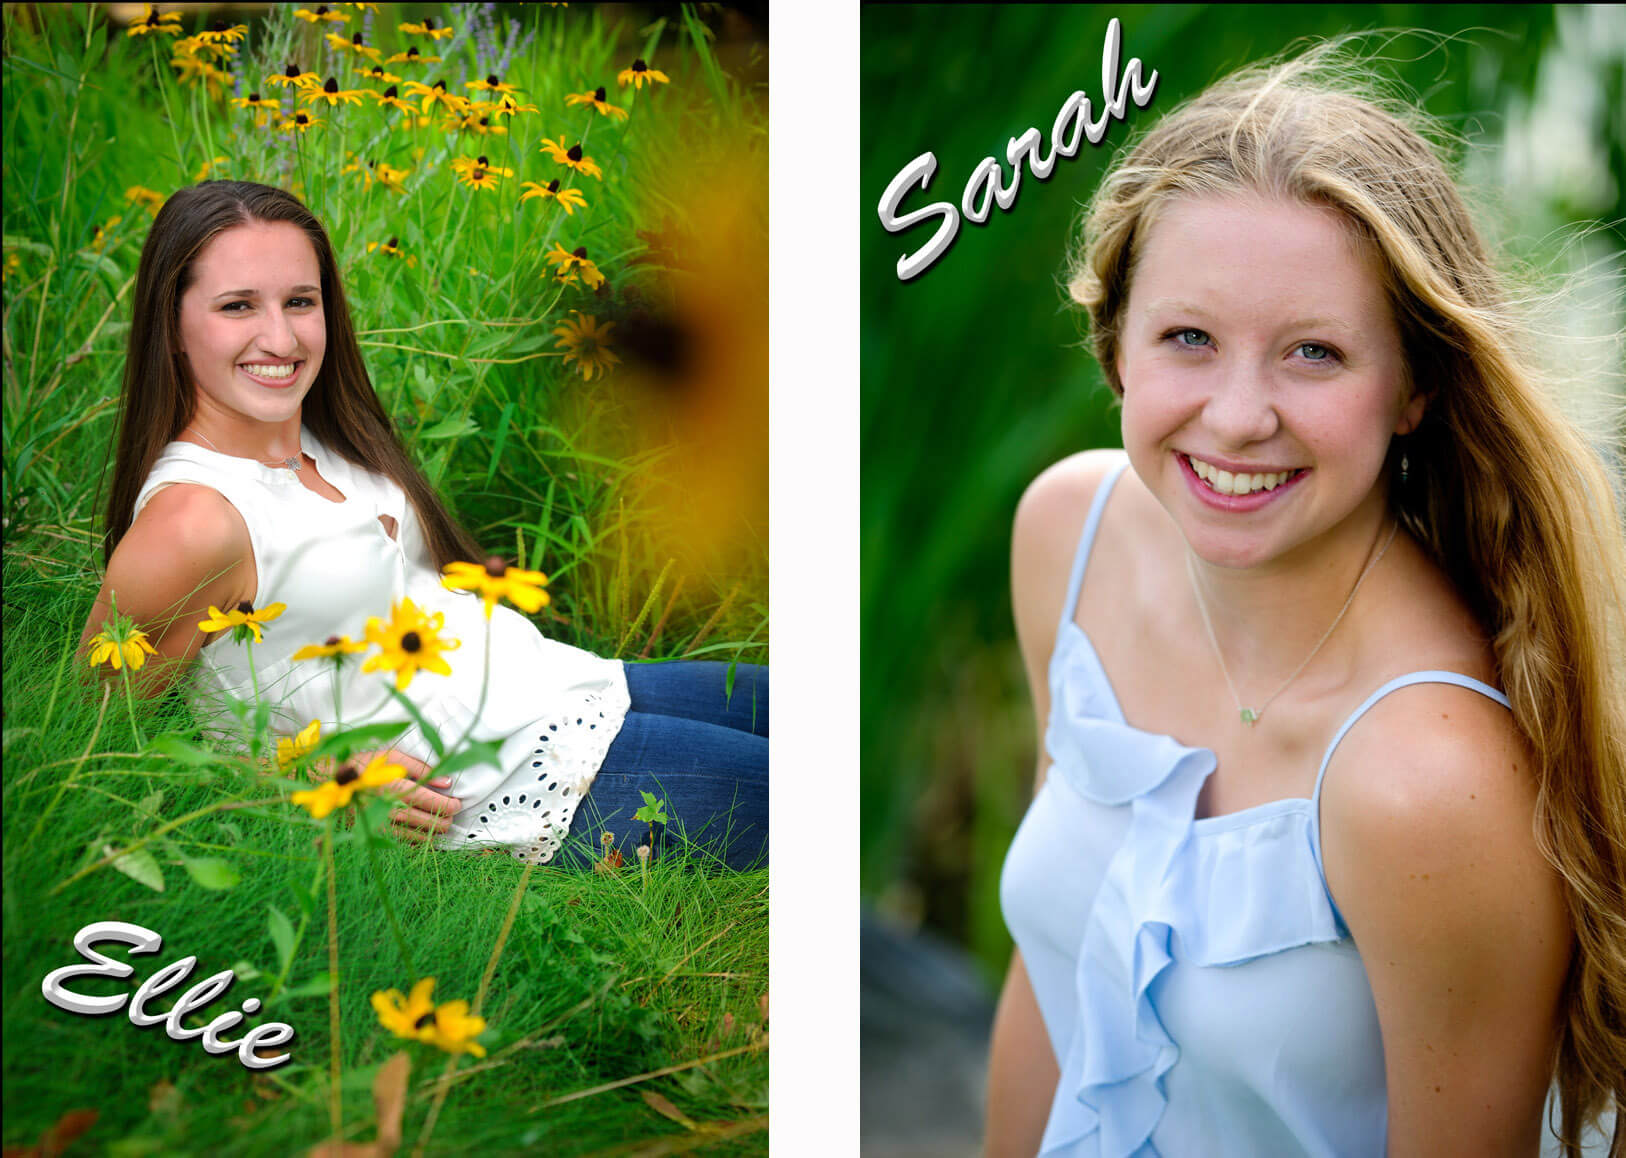 Birmingham, Michigan senior photography is fun and joyful ... especially when they are done as a buddy session with a best friend.